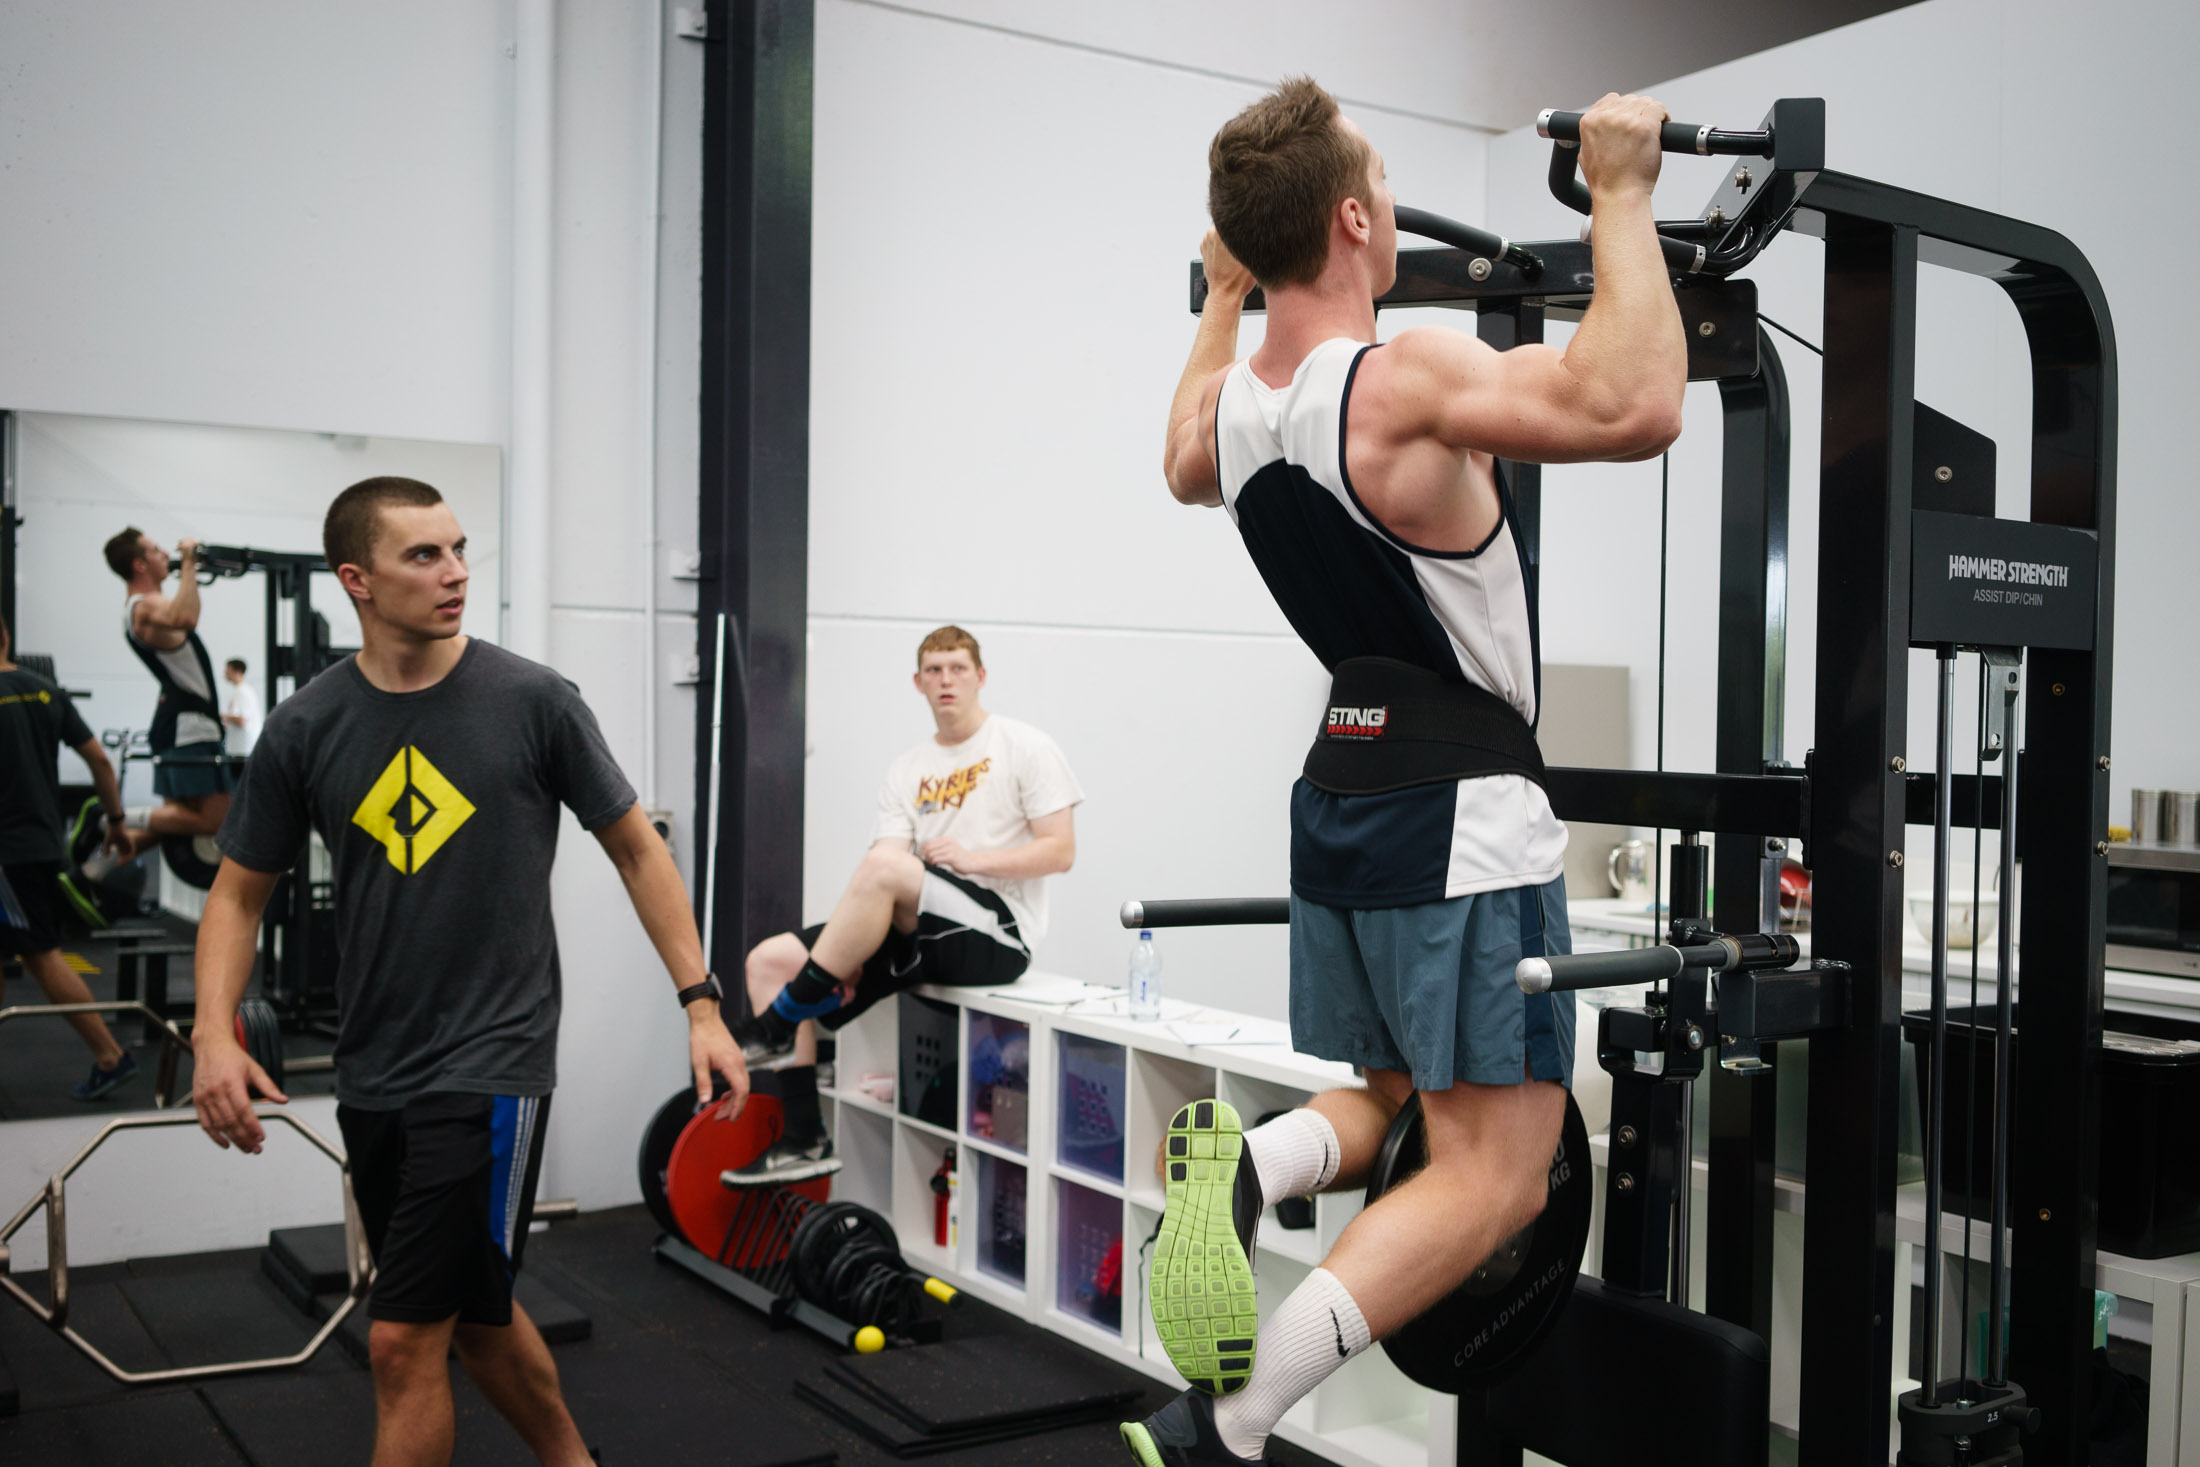 How to do a Chin Up & Pull Up Properly: The Problem and Solution